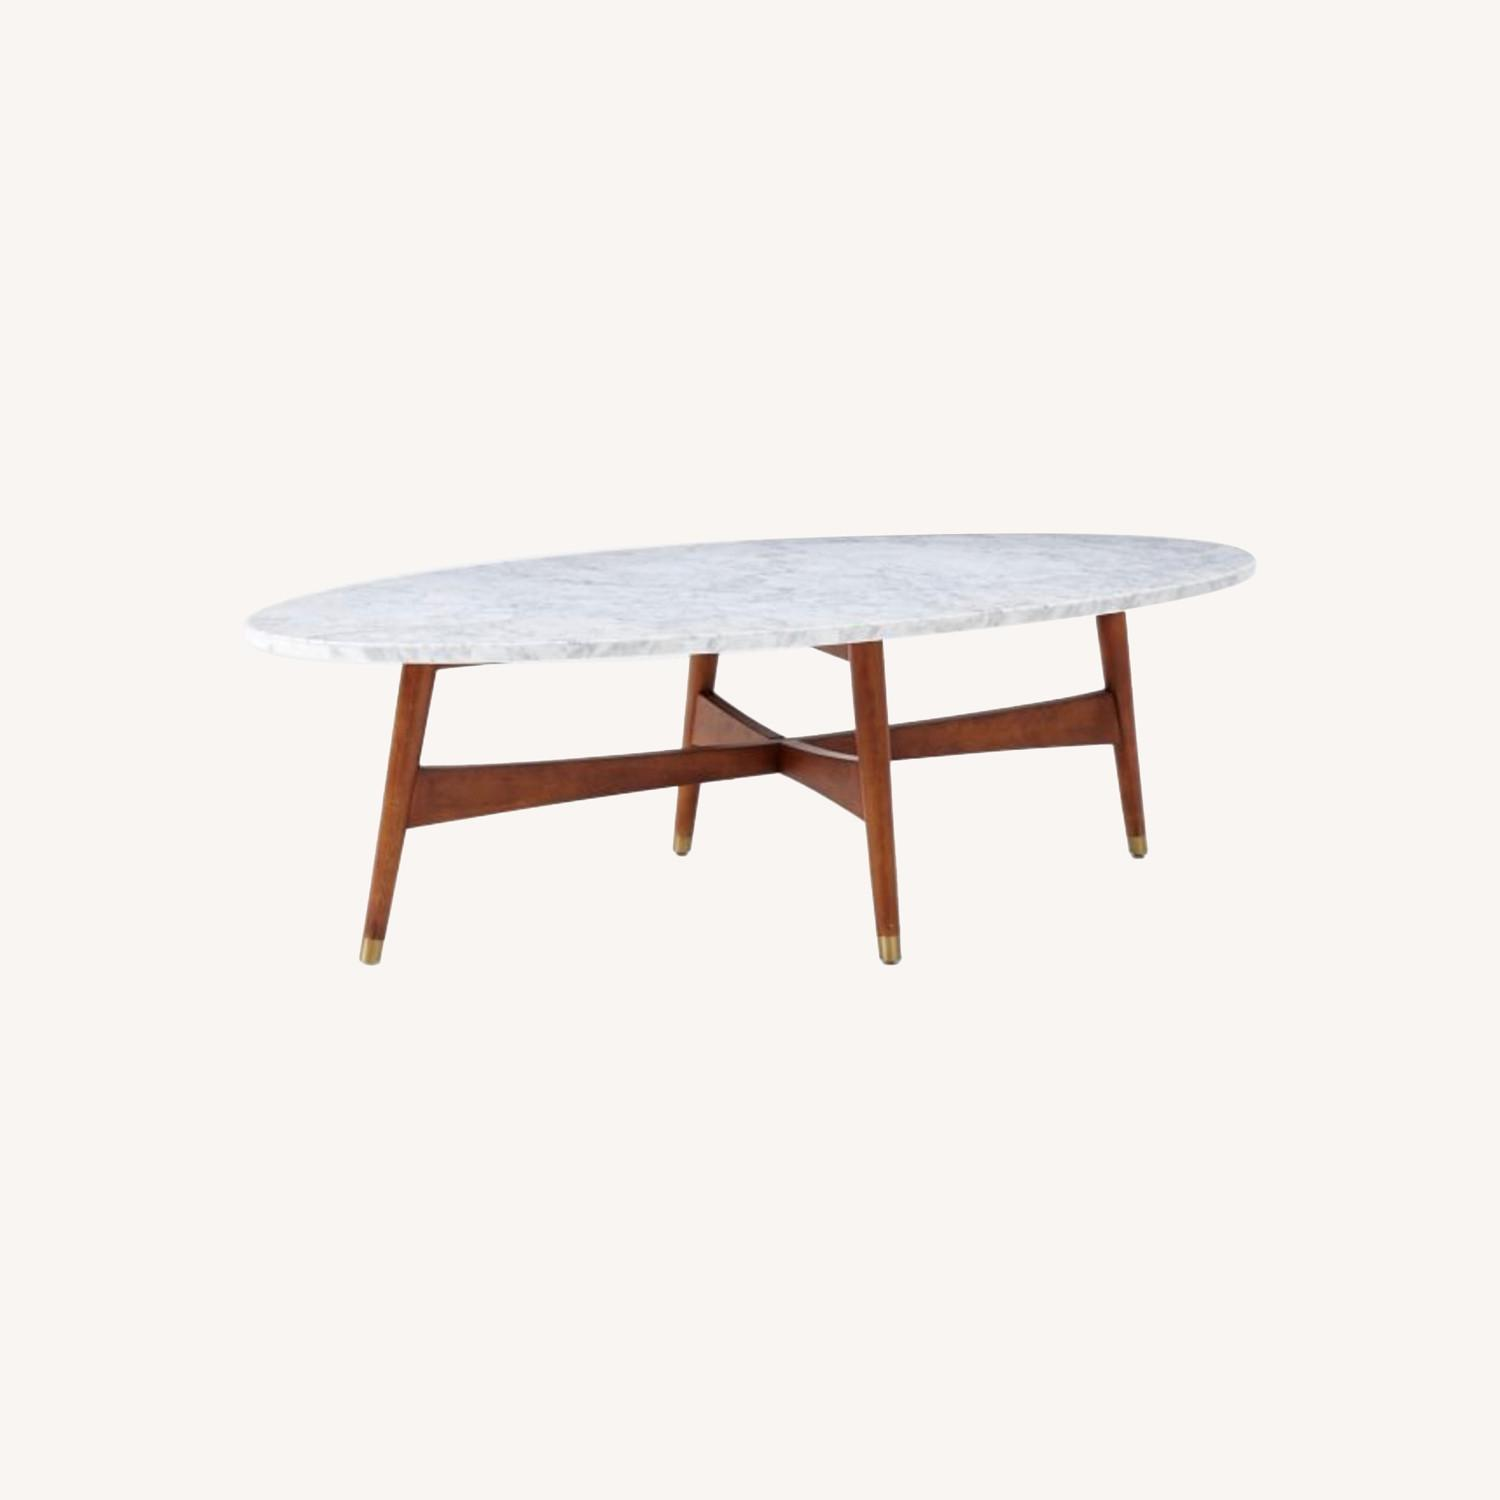 West Elm Reeve Mid-Century Oval Coffee Table - Marble Top - image-0